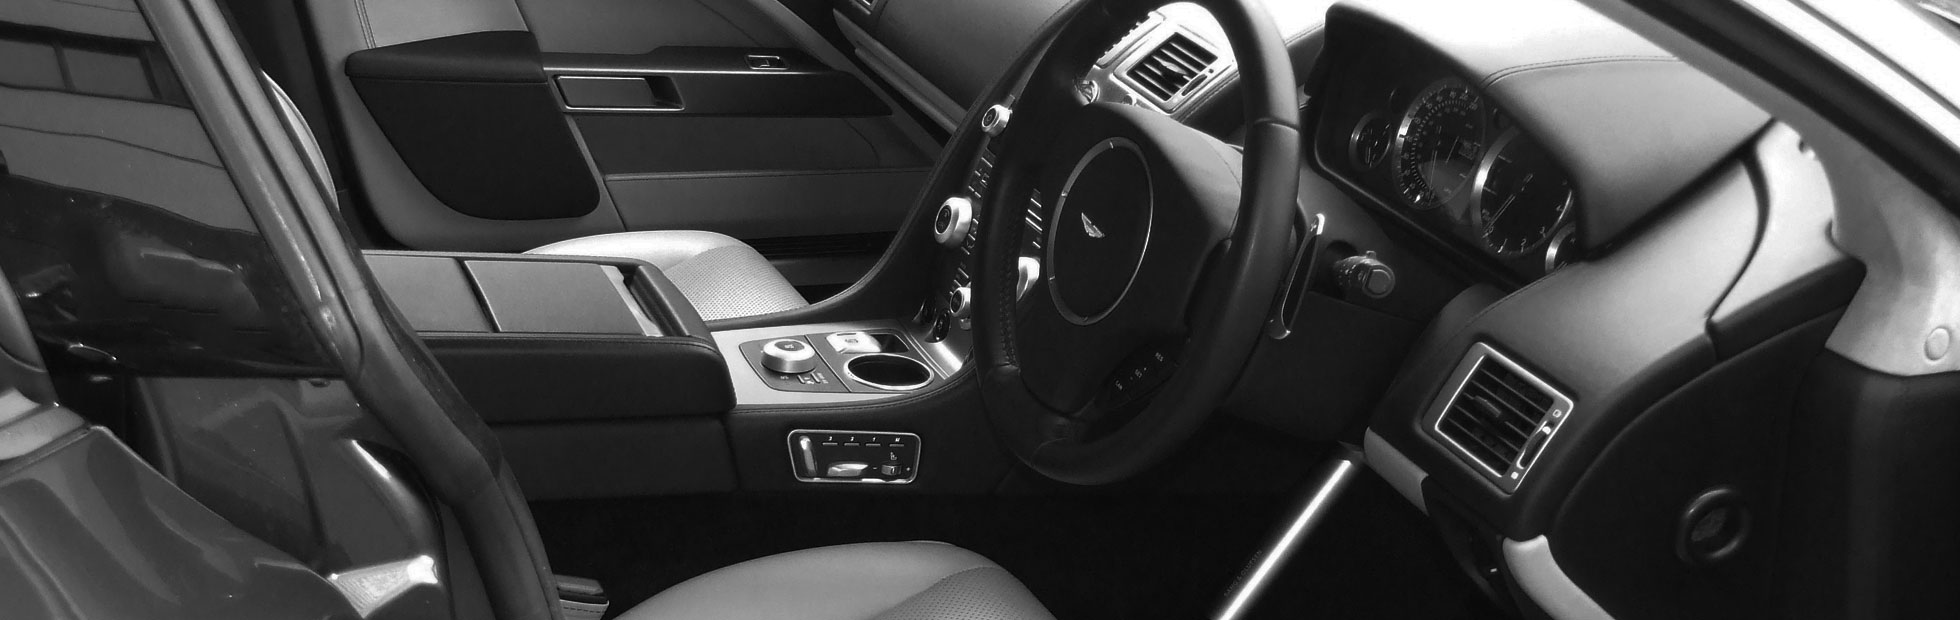 Luxury Car Hire Interior